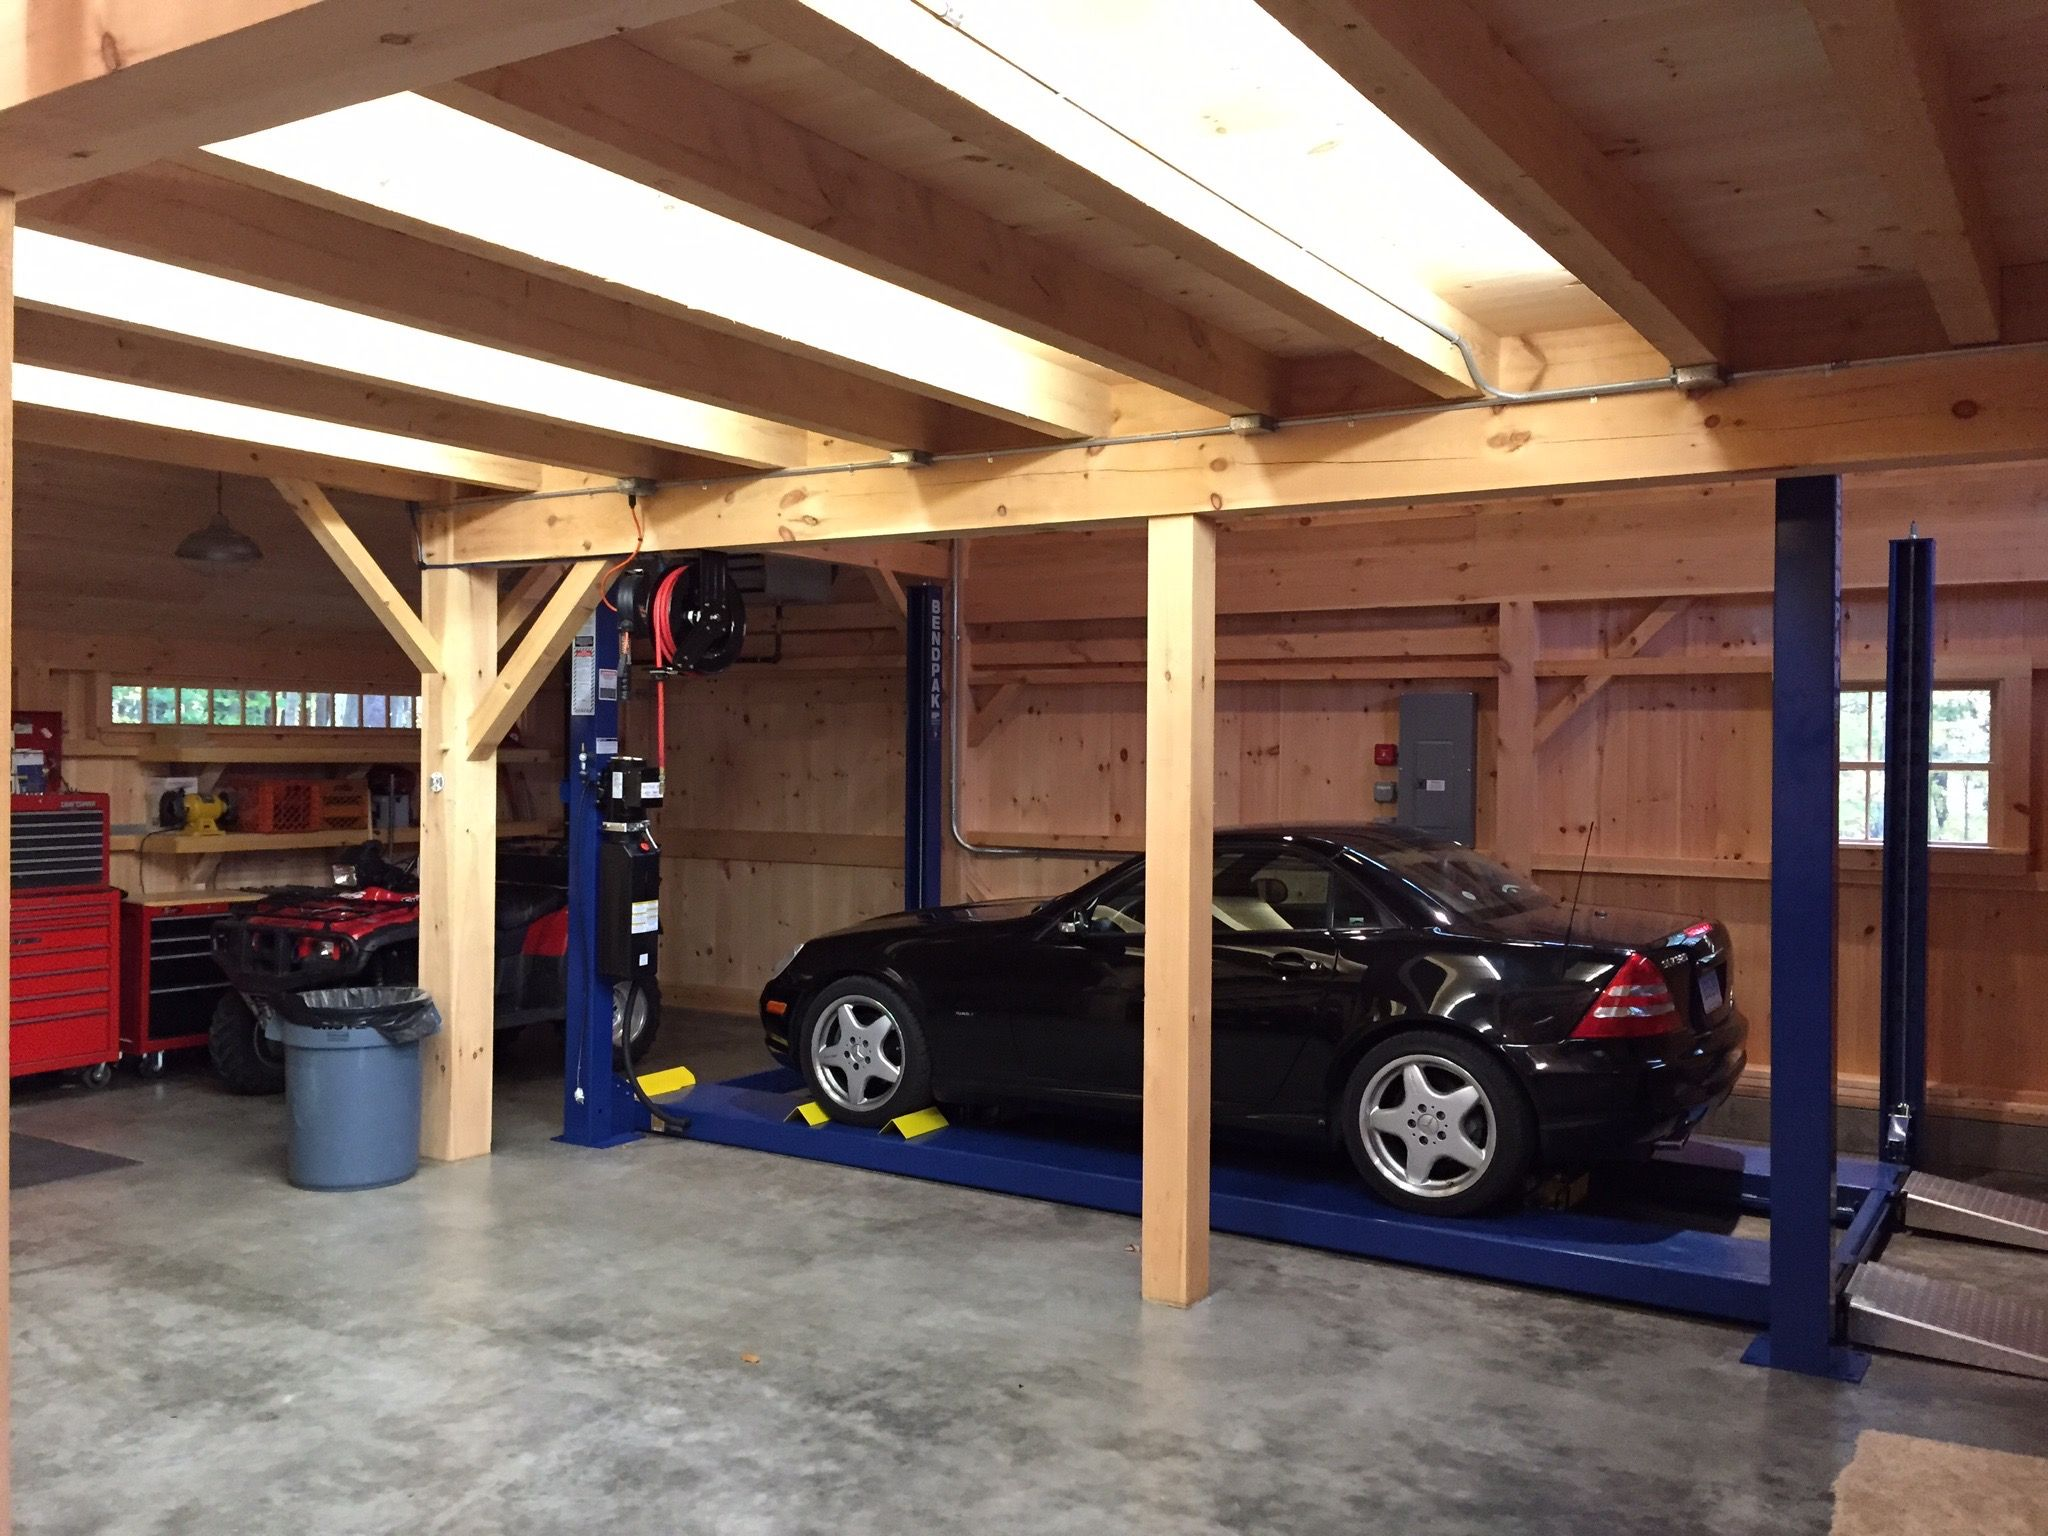 Car Lift Bay In Our 1-1/2 Story Barn; Open To Roof Above